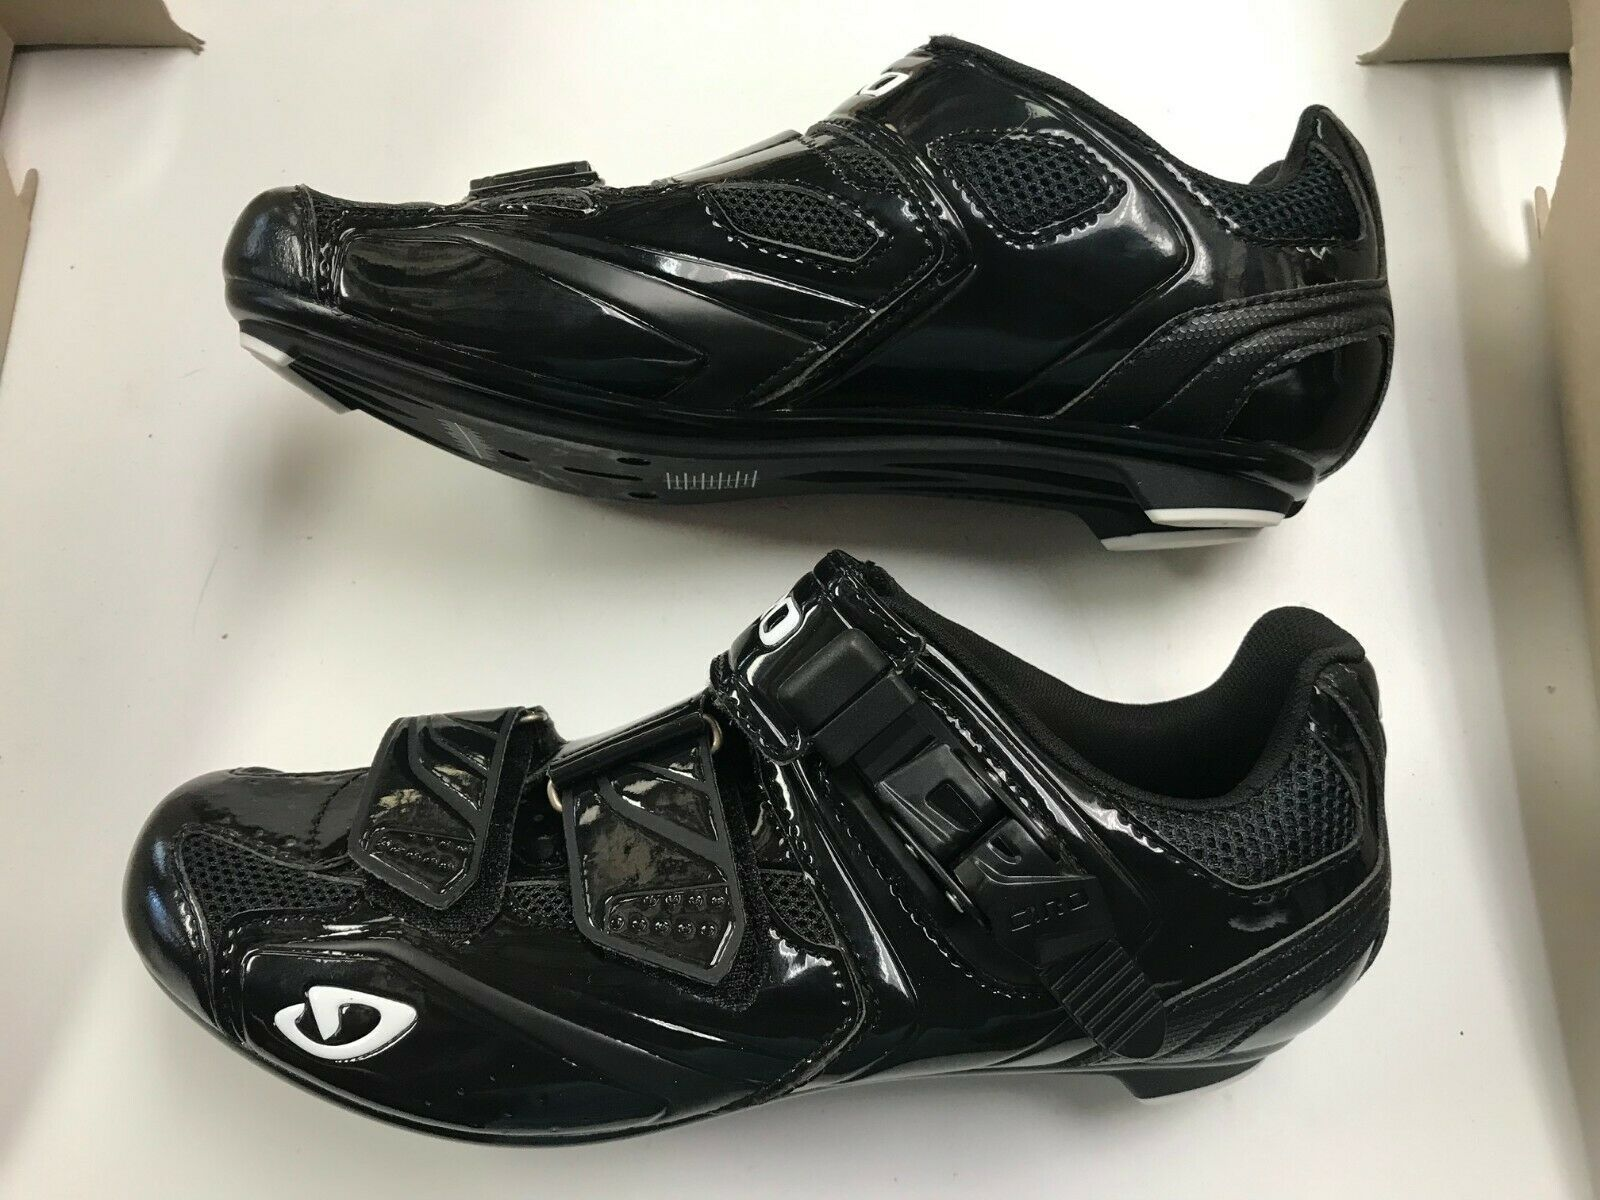 NEW in Box Giro Apeckx Mens Cycling schuhe EU 40 US 7.5 Road schuhe